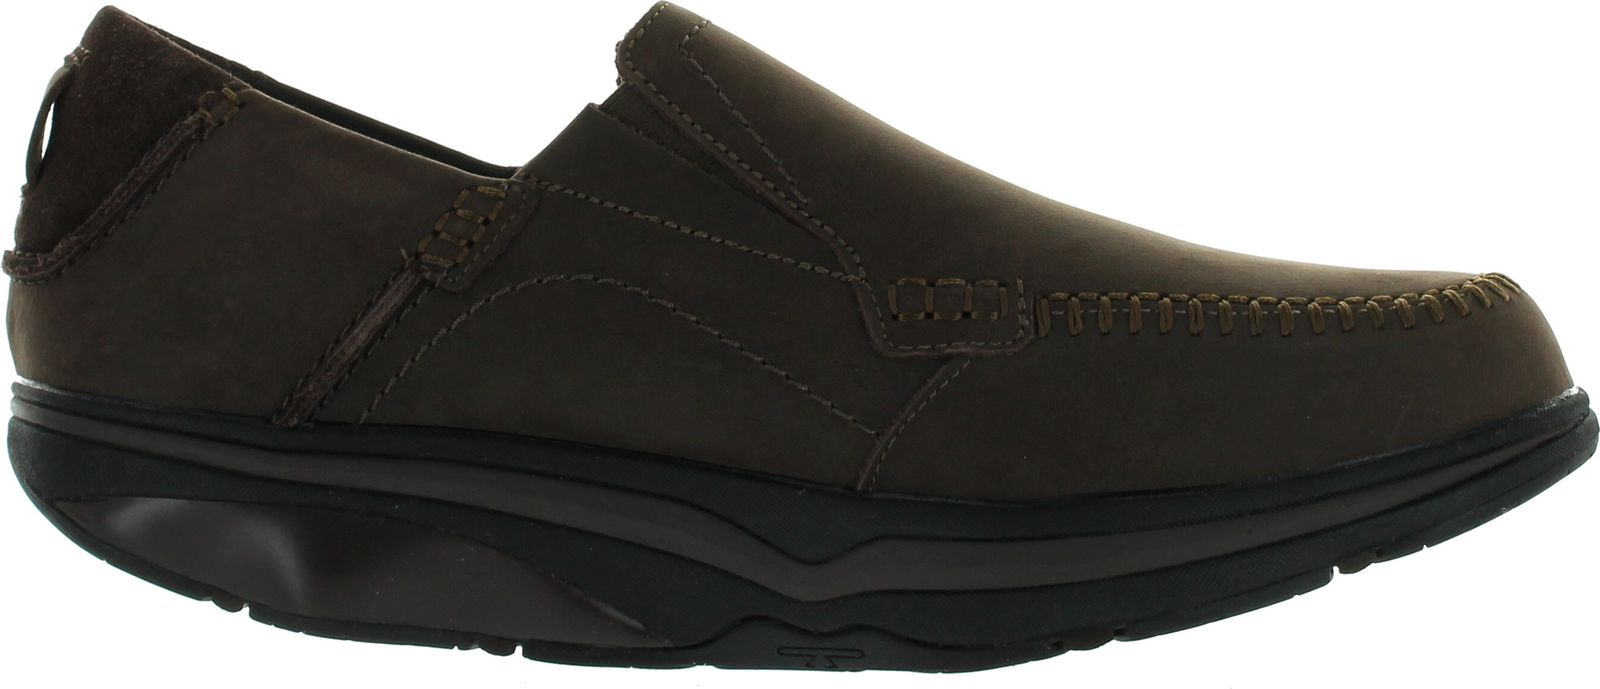 mbt mens baraka slip on walking shoes ebay